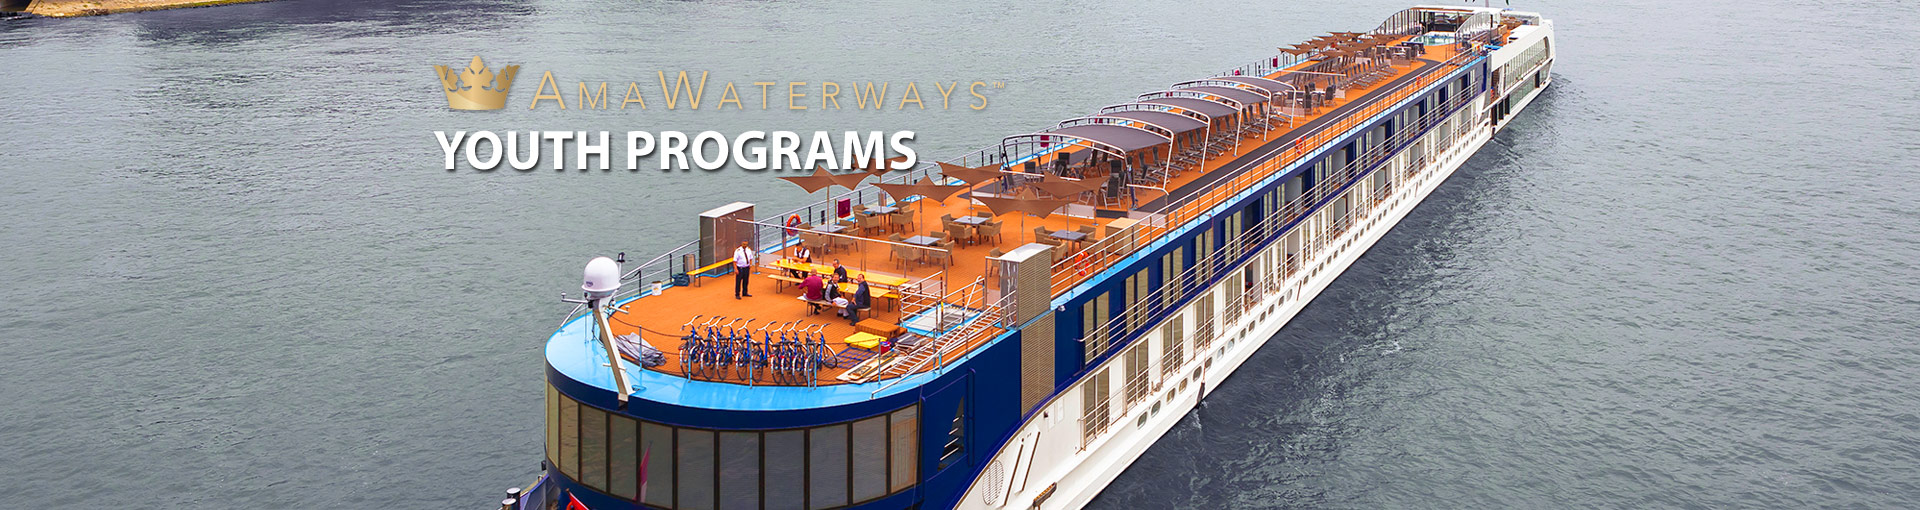 AmaWaterways Youth Programs